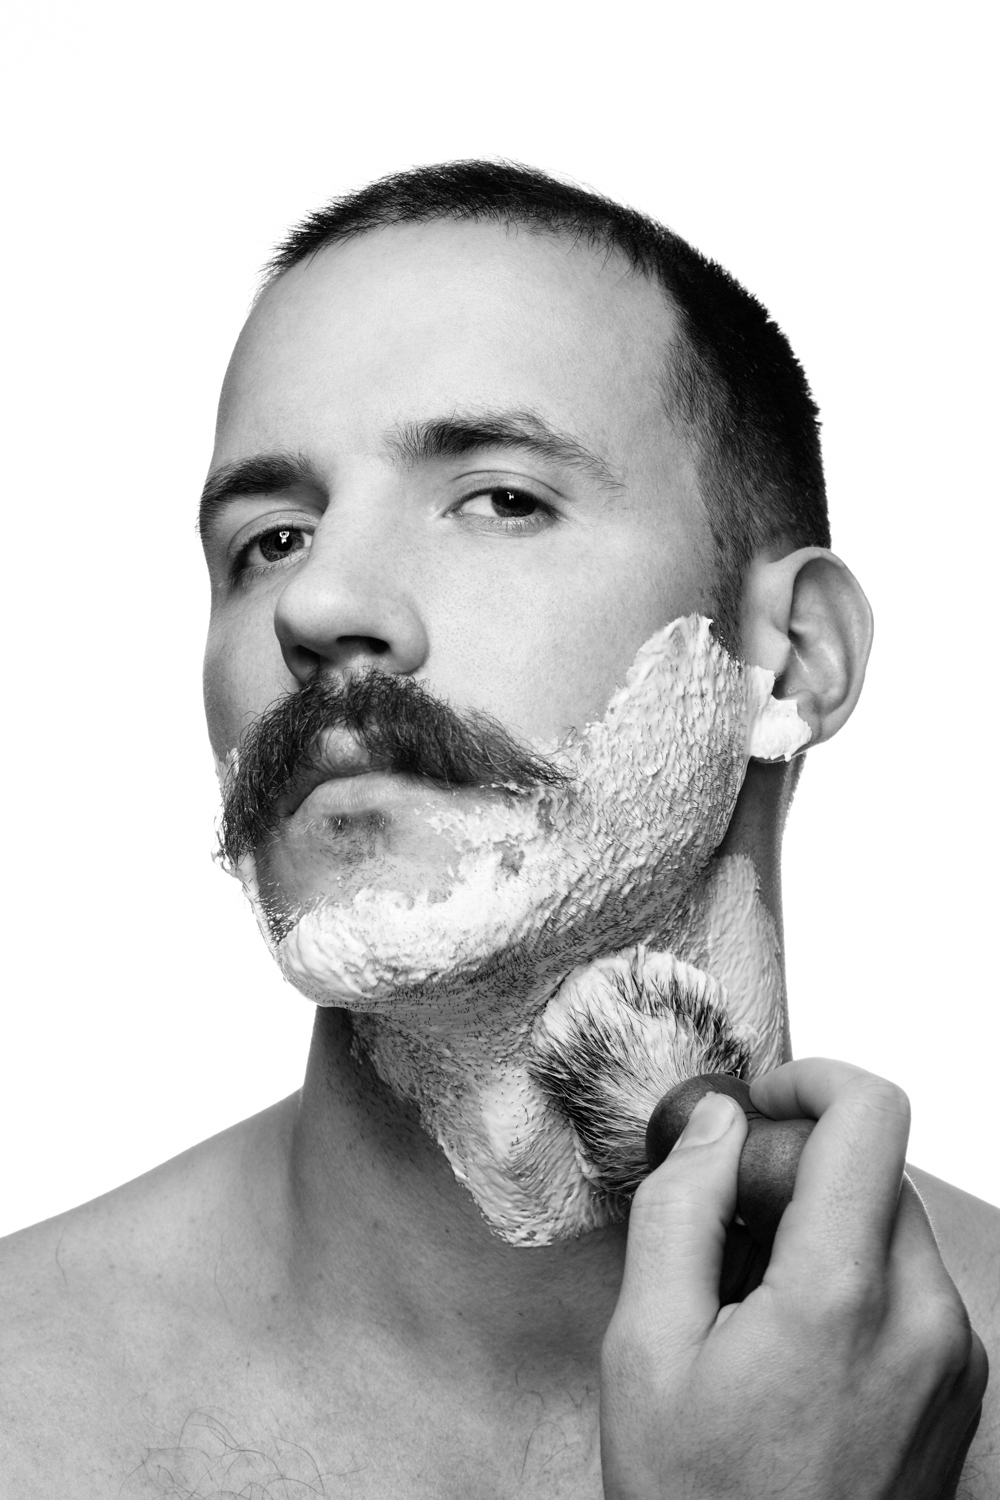 Man on white background, studio photography, black and white portraits, man shaving